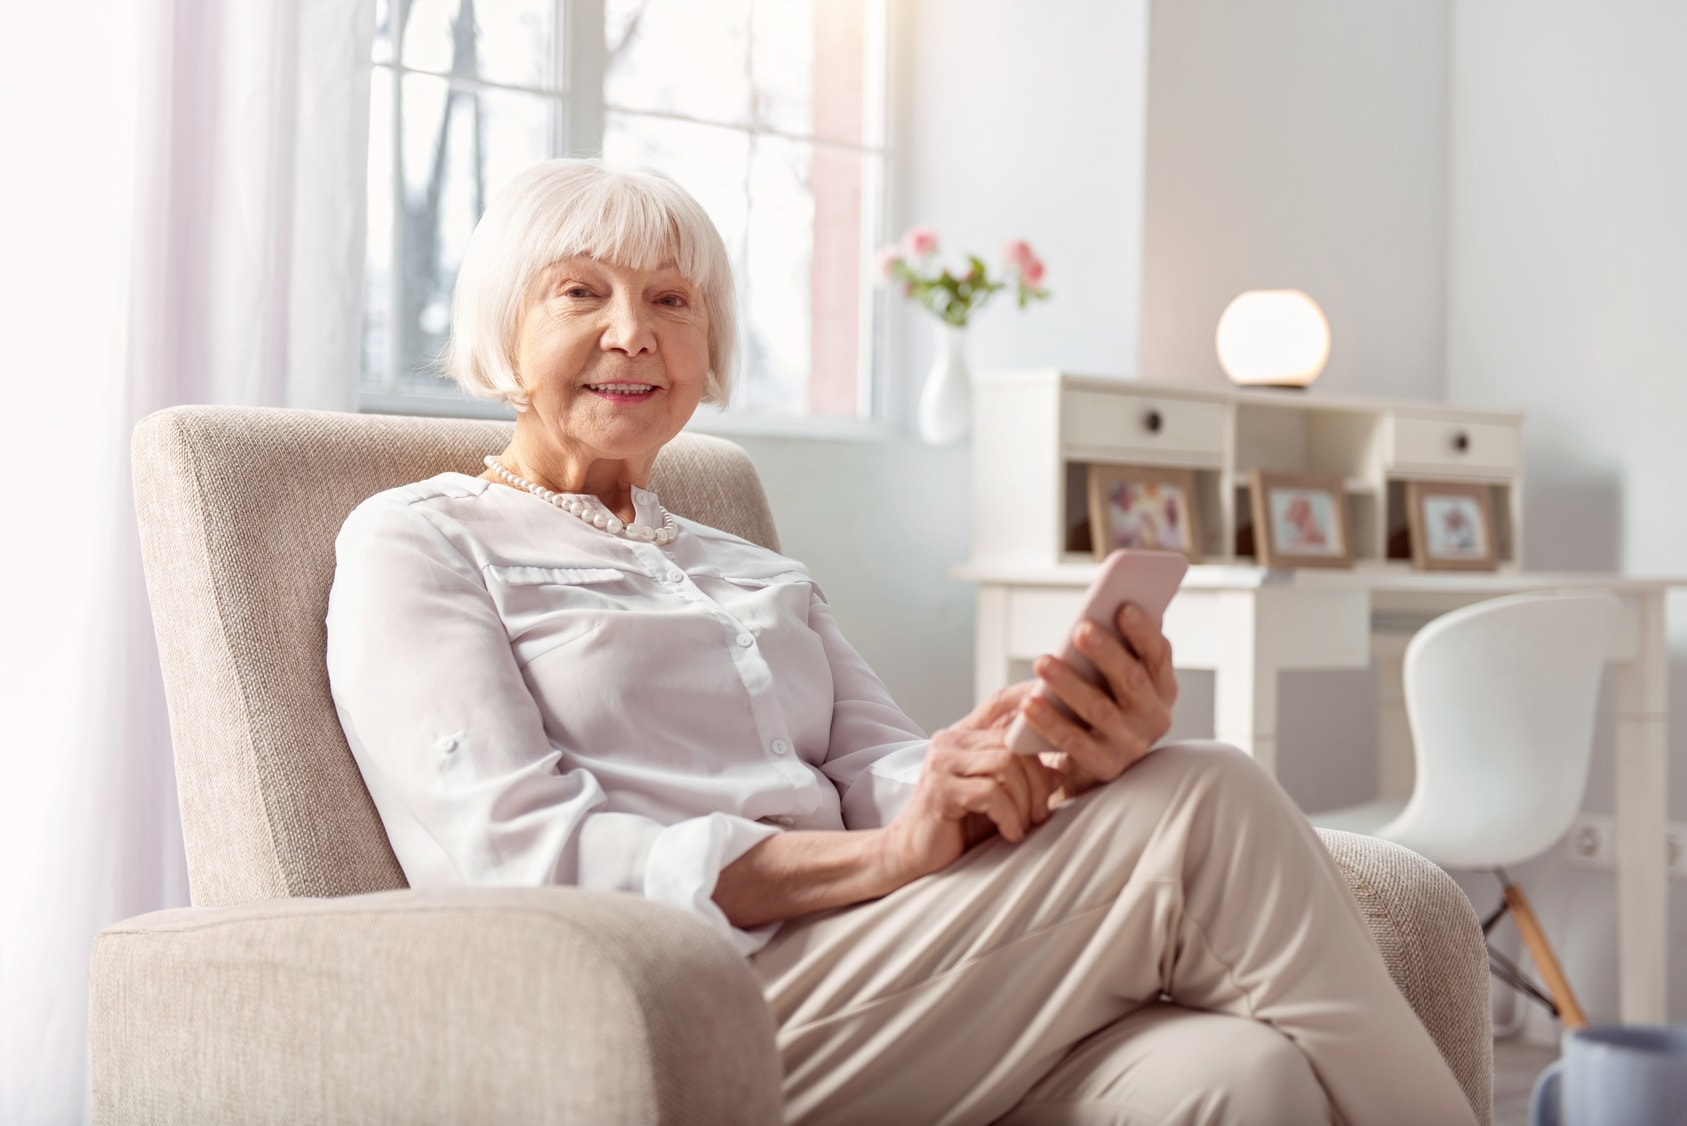 Seniors trending as fastest growing demographic on social media